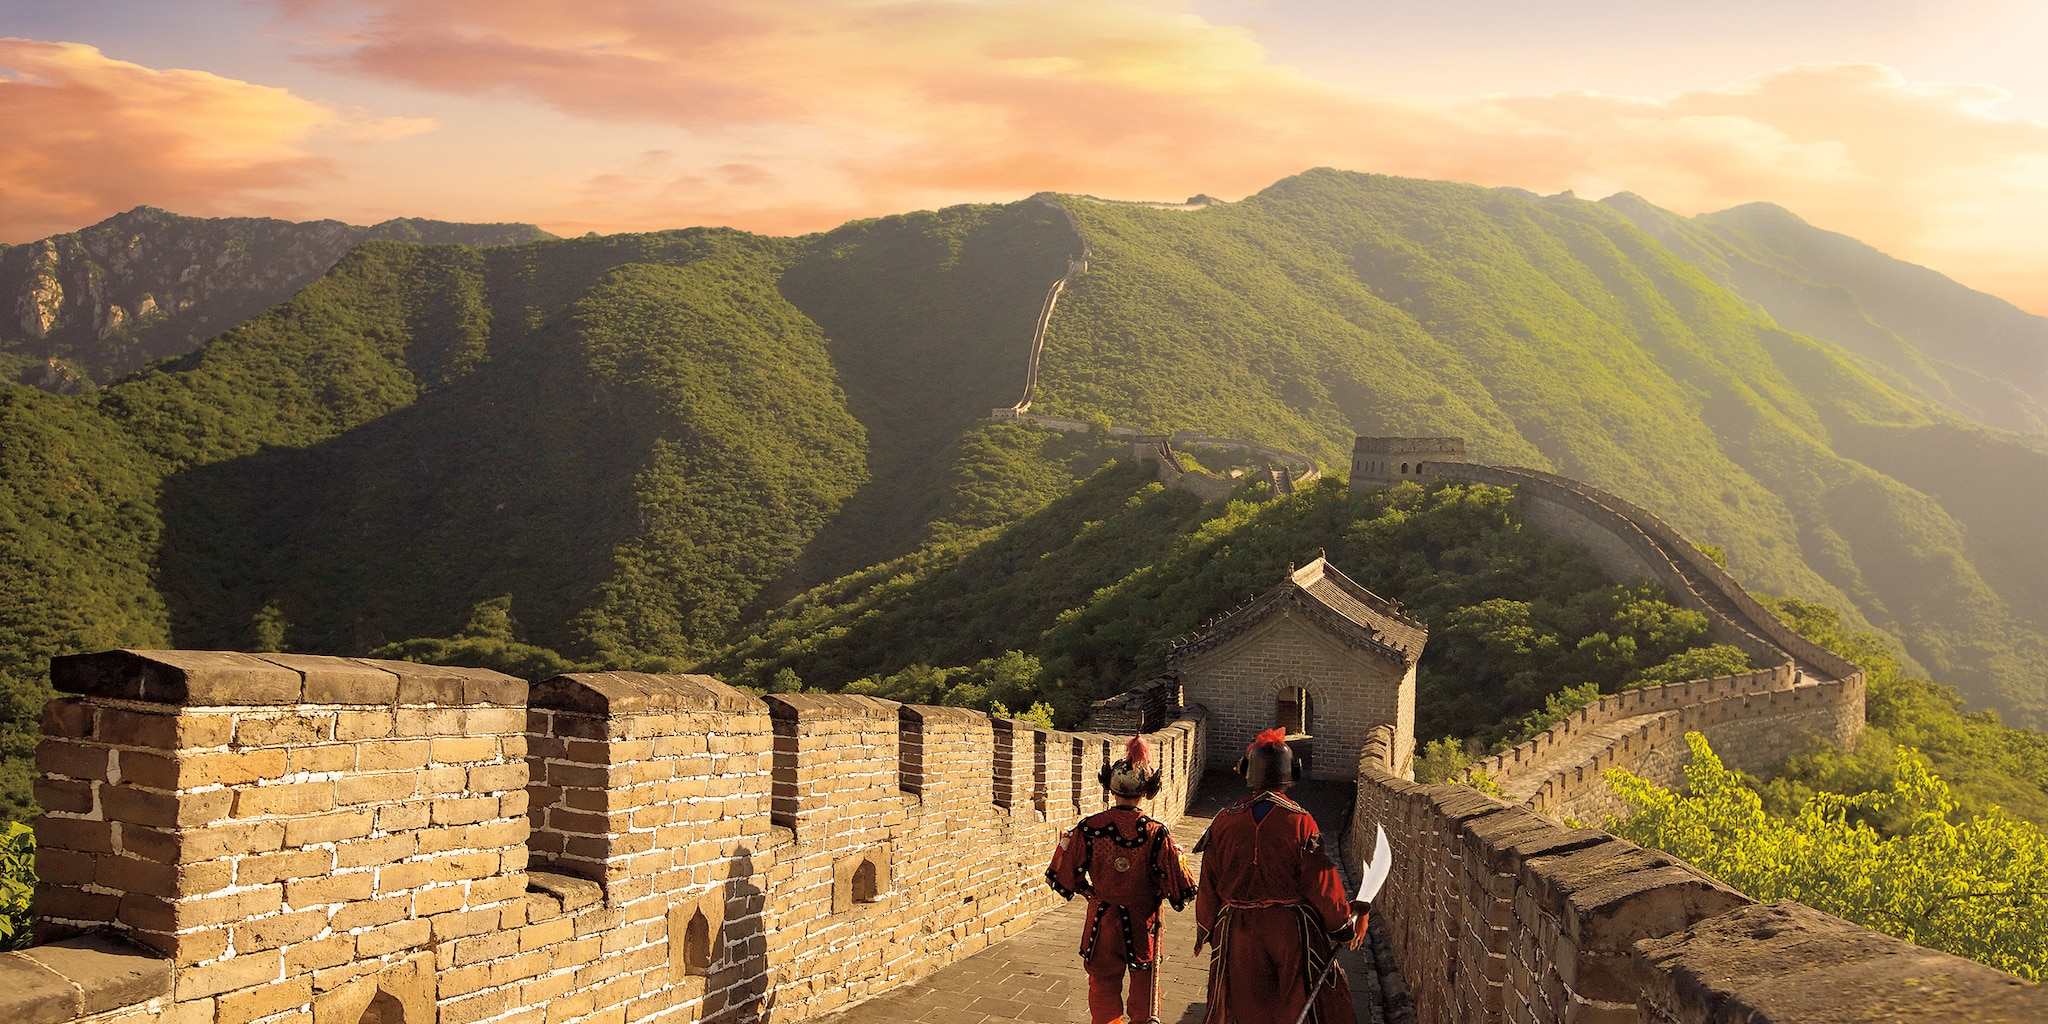 2 men walking dressed in centuries' old costumes walk along the Great Wall of China